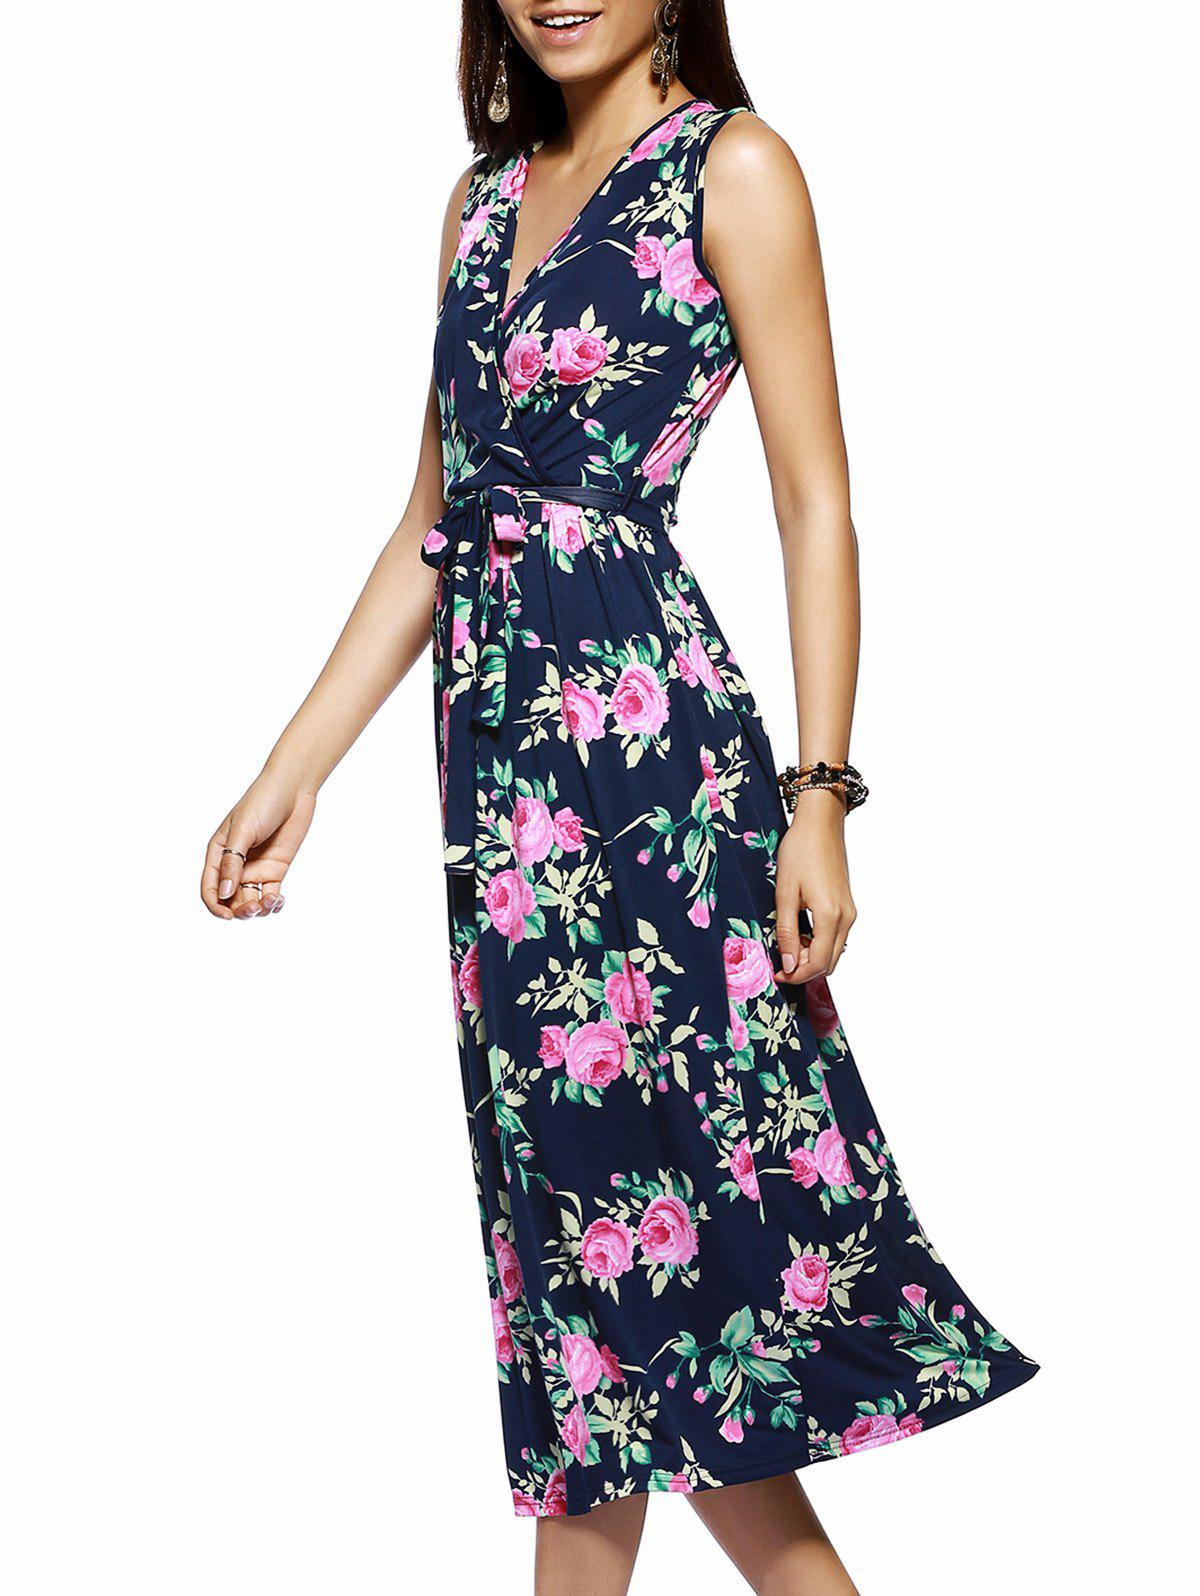 Bohemian Sleeveless V Neck Floral Print Maxi Dress - PURPLISH BLUE XL